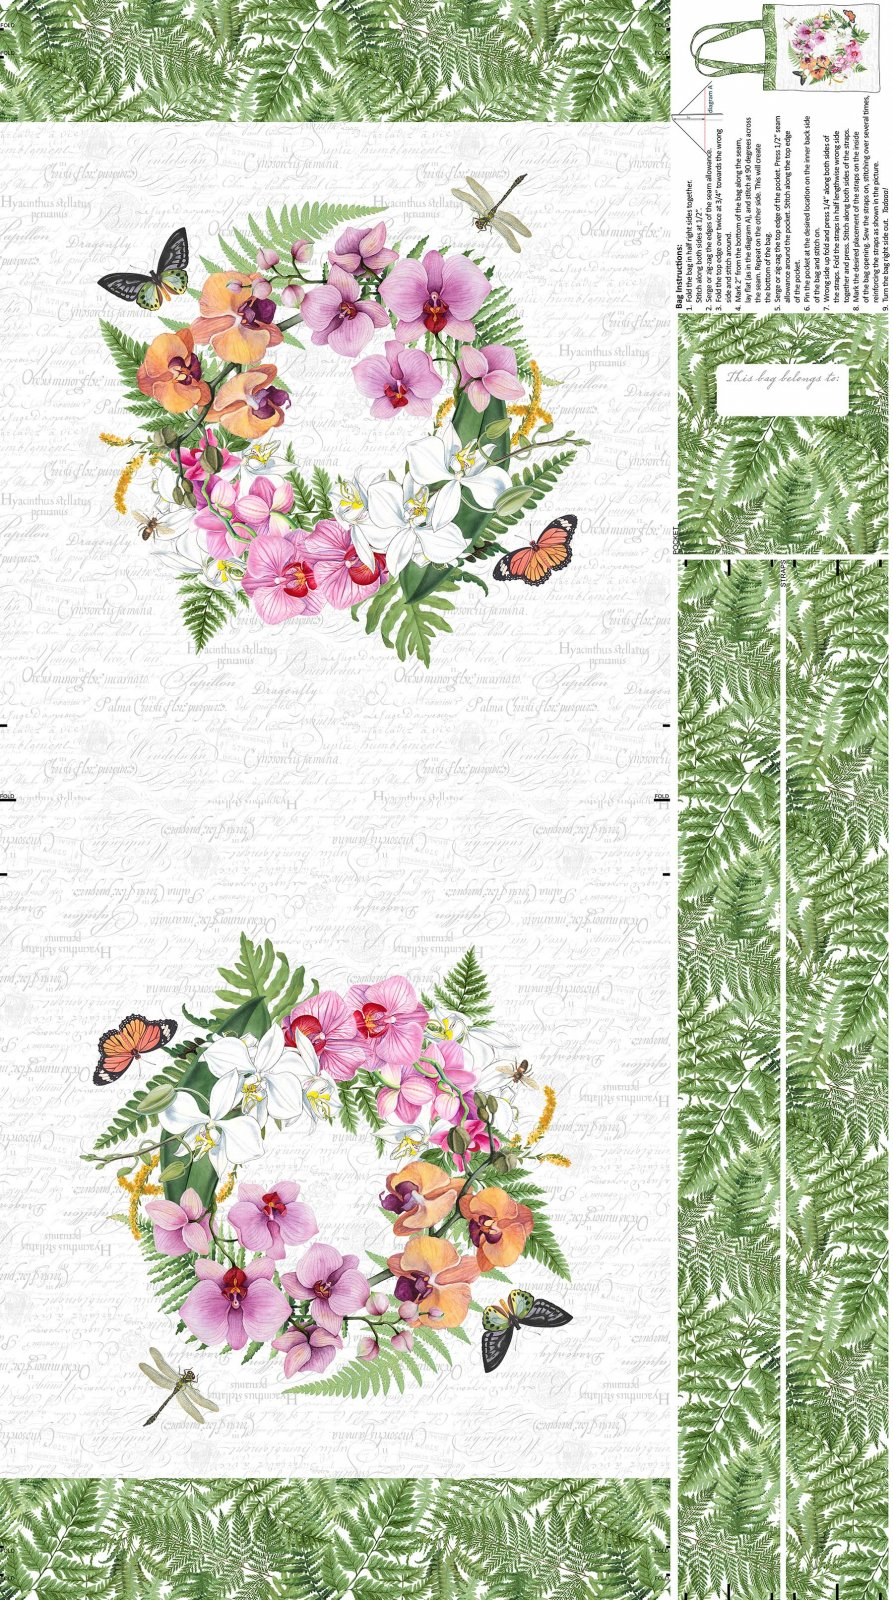 Orchid in Bloom Canvas Bag Panel